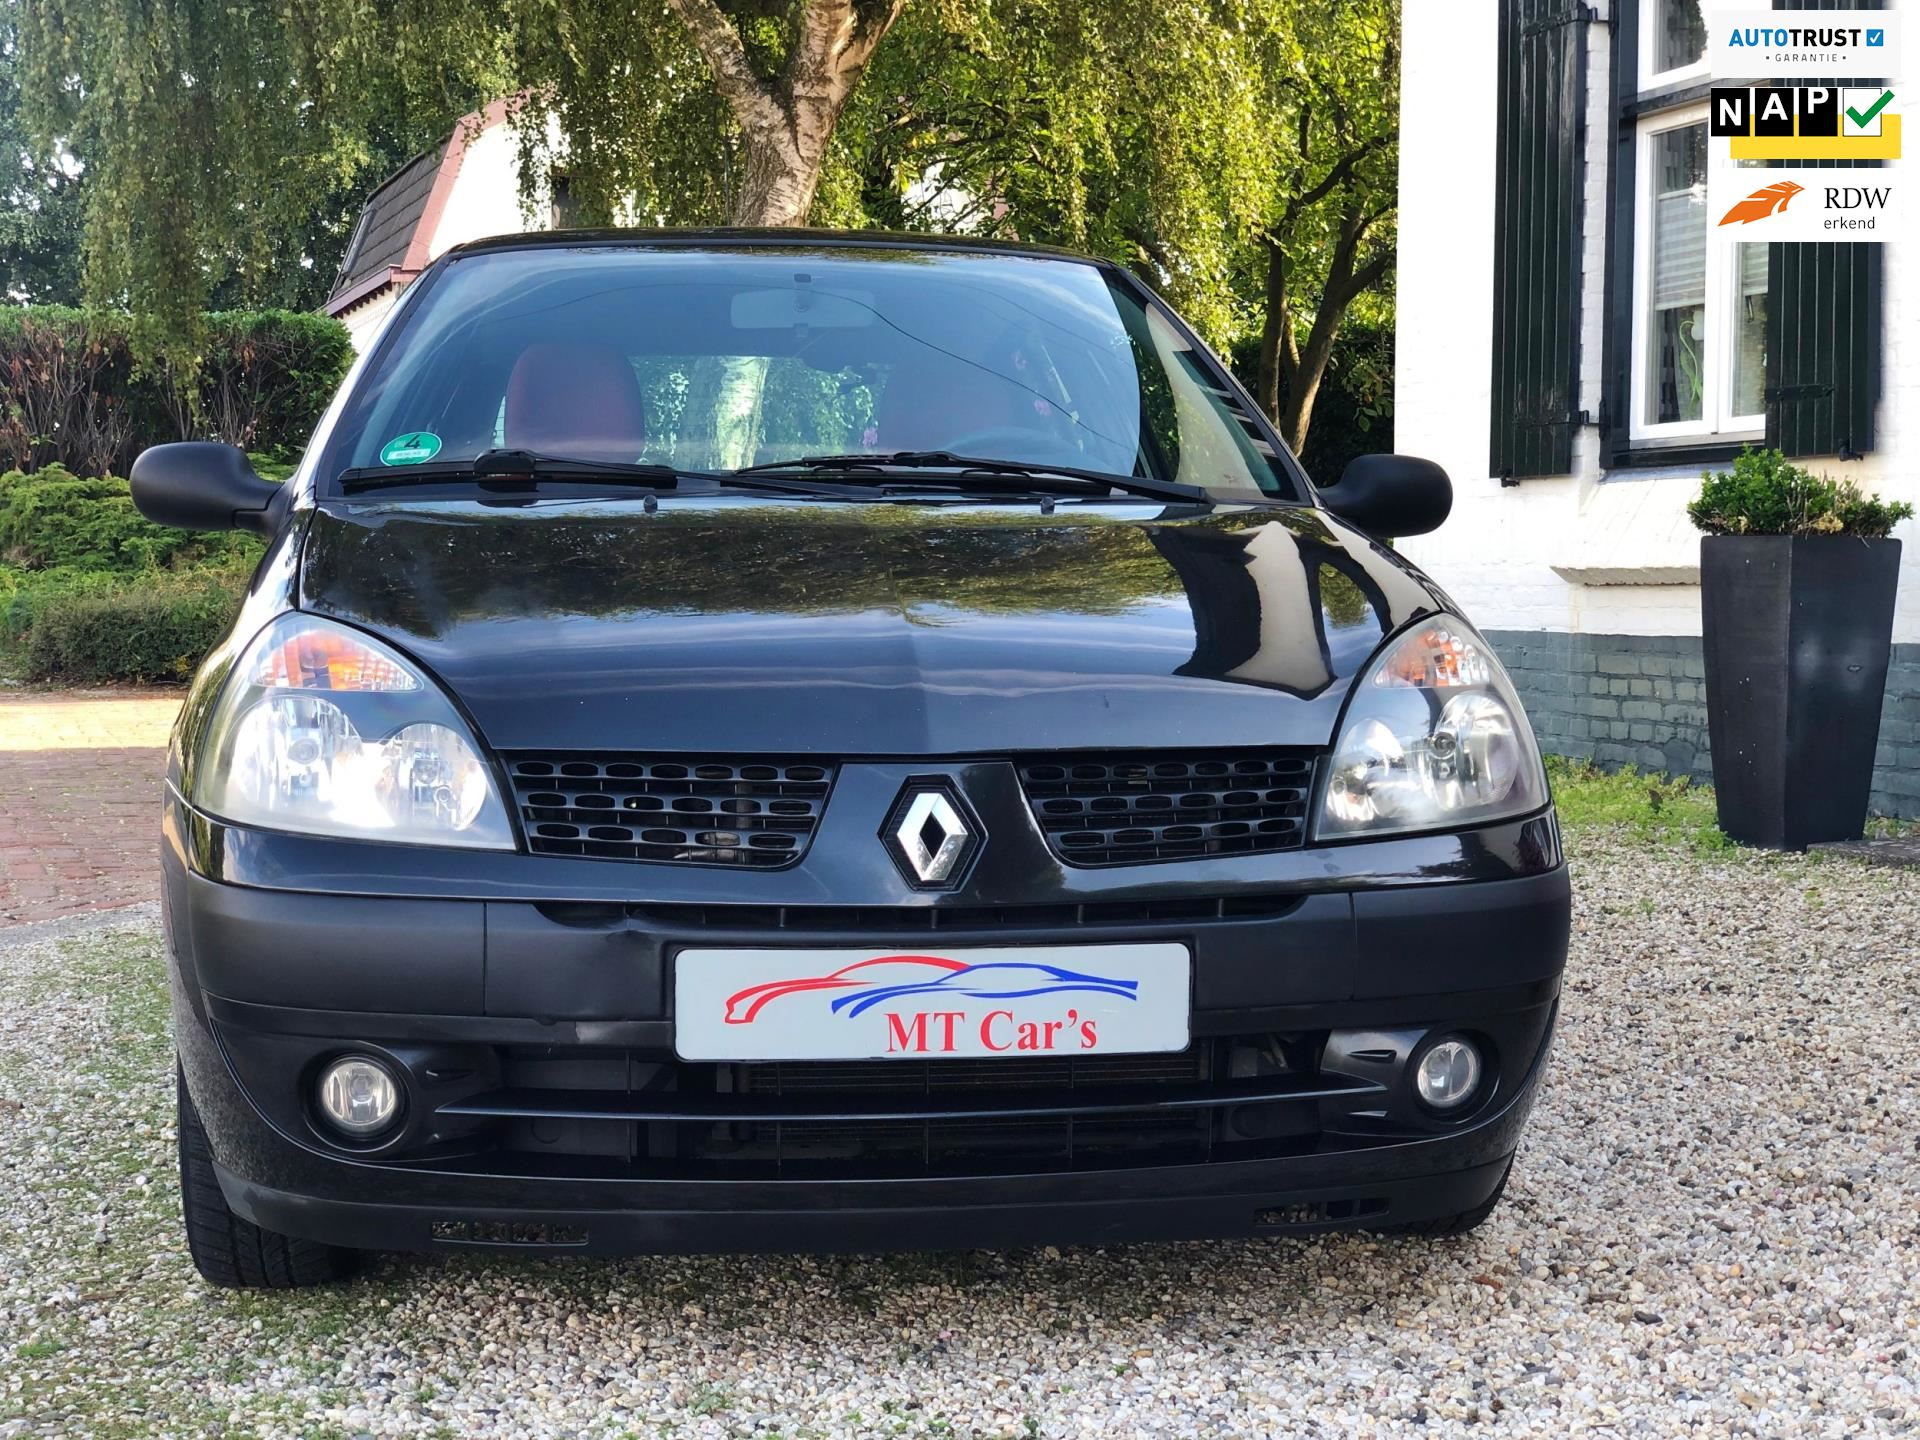 Renault Clio occasion - M.T.  Car's & Carcleaningcenter